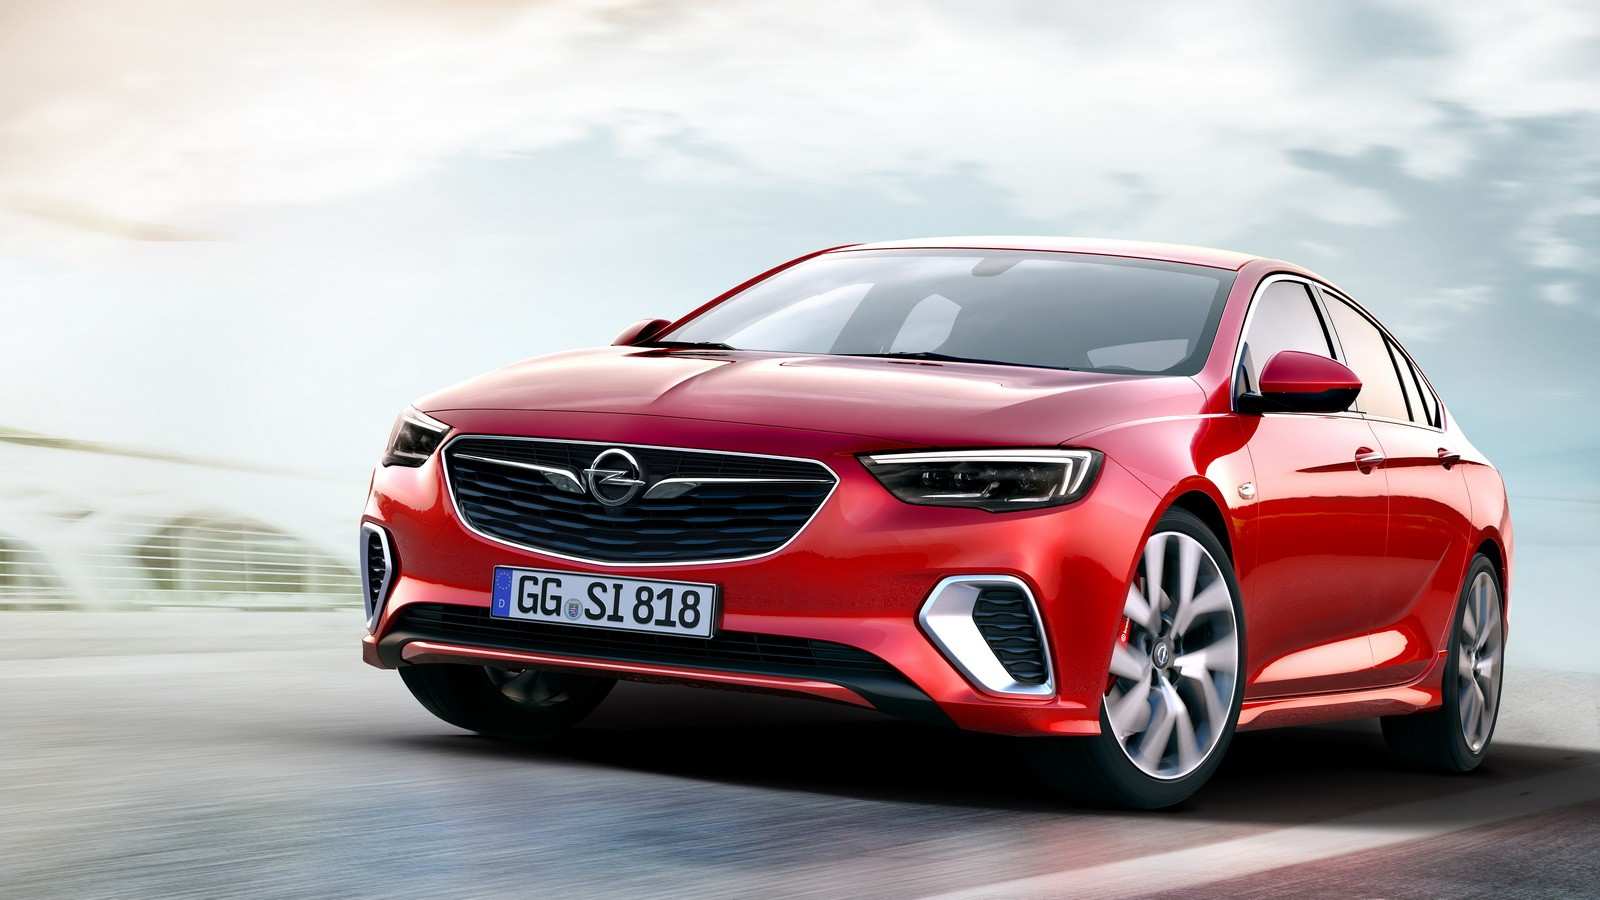 2018 opel insignia gsi is quicker than old insignia opc at the nurburgring autoevolution. Black Bedroom Furniture Sets. Home Design Ideas